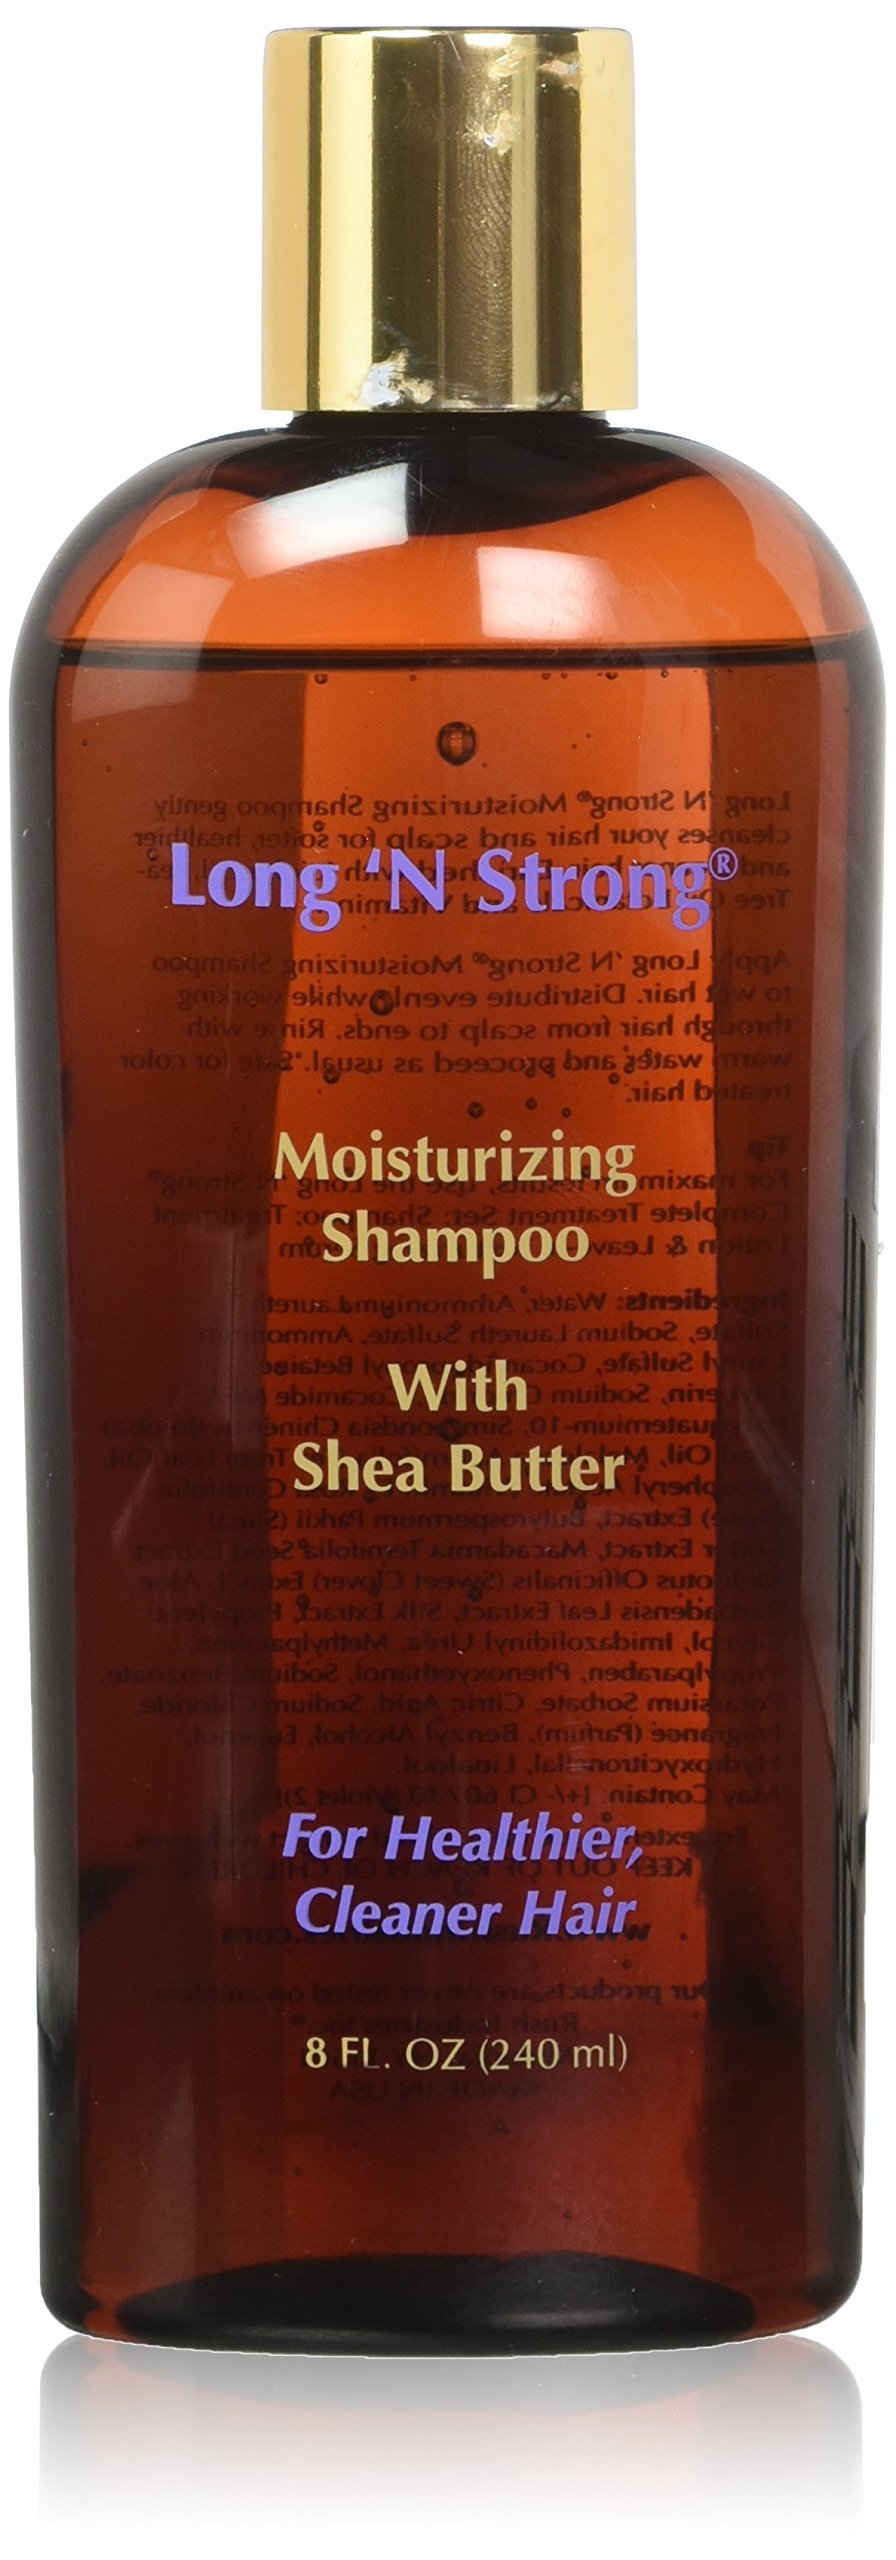 Long 'N Strong Moisturizing Shampoo with Shea Butter! Cleans & Softens Hair, Helping Obtain the Perfect Ph Balance for All Ethnic Hair Types